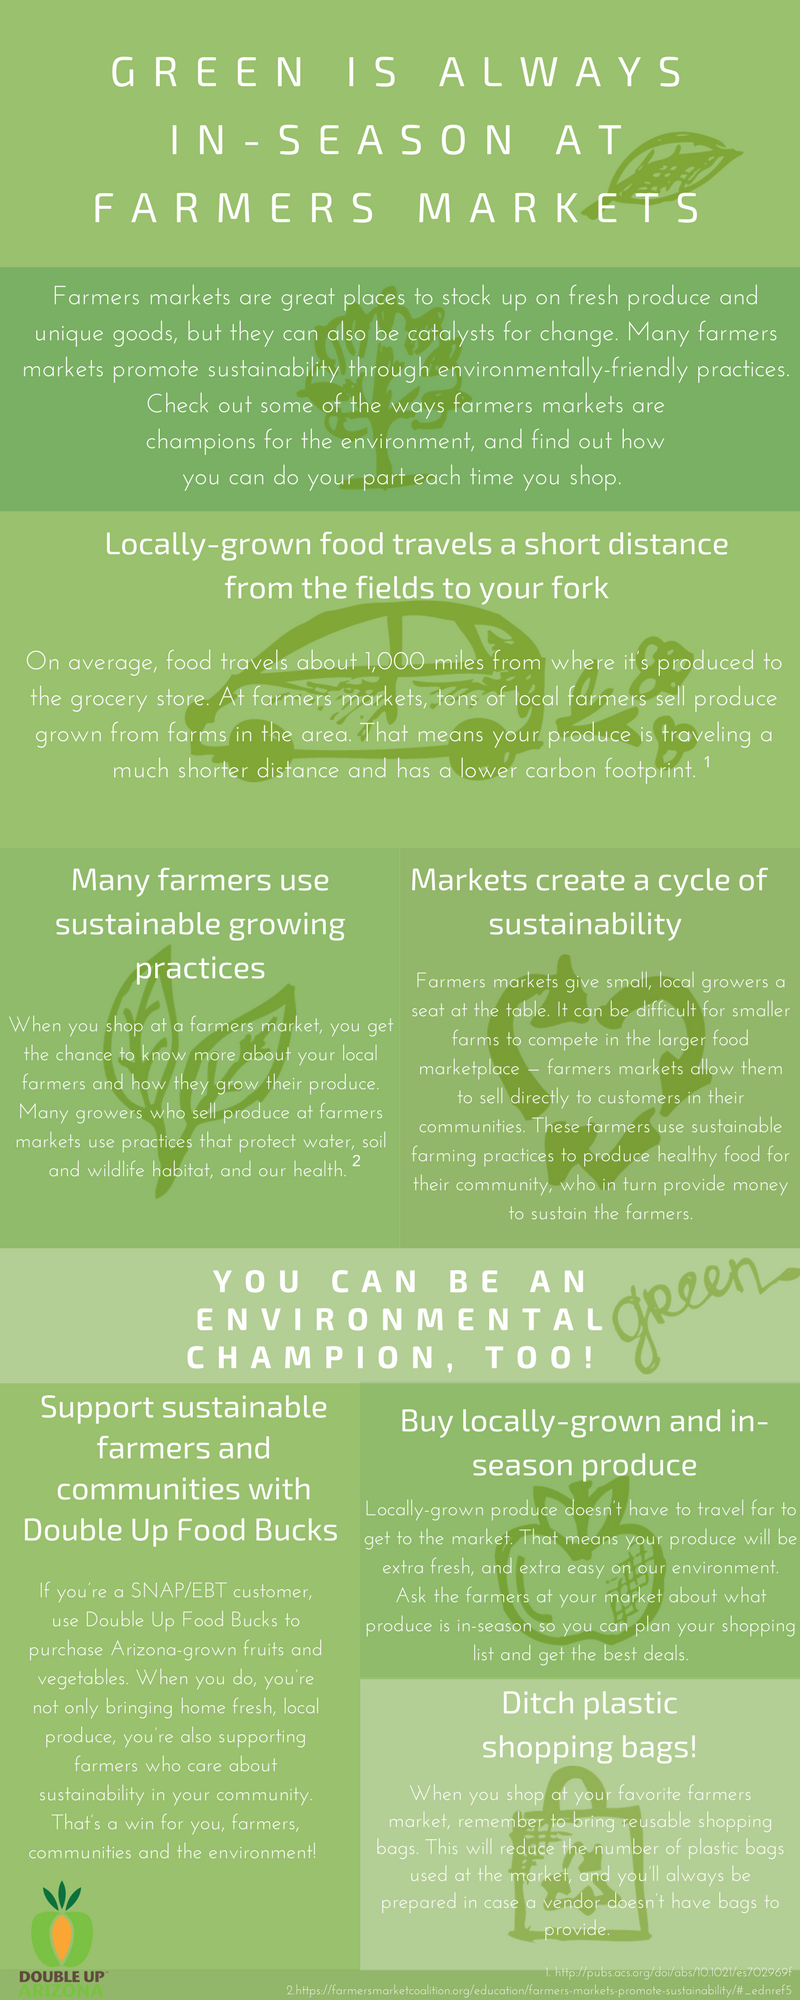 green-is-always-in-season-at-farmers-markets_orig.png